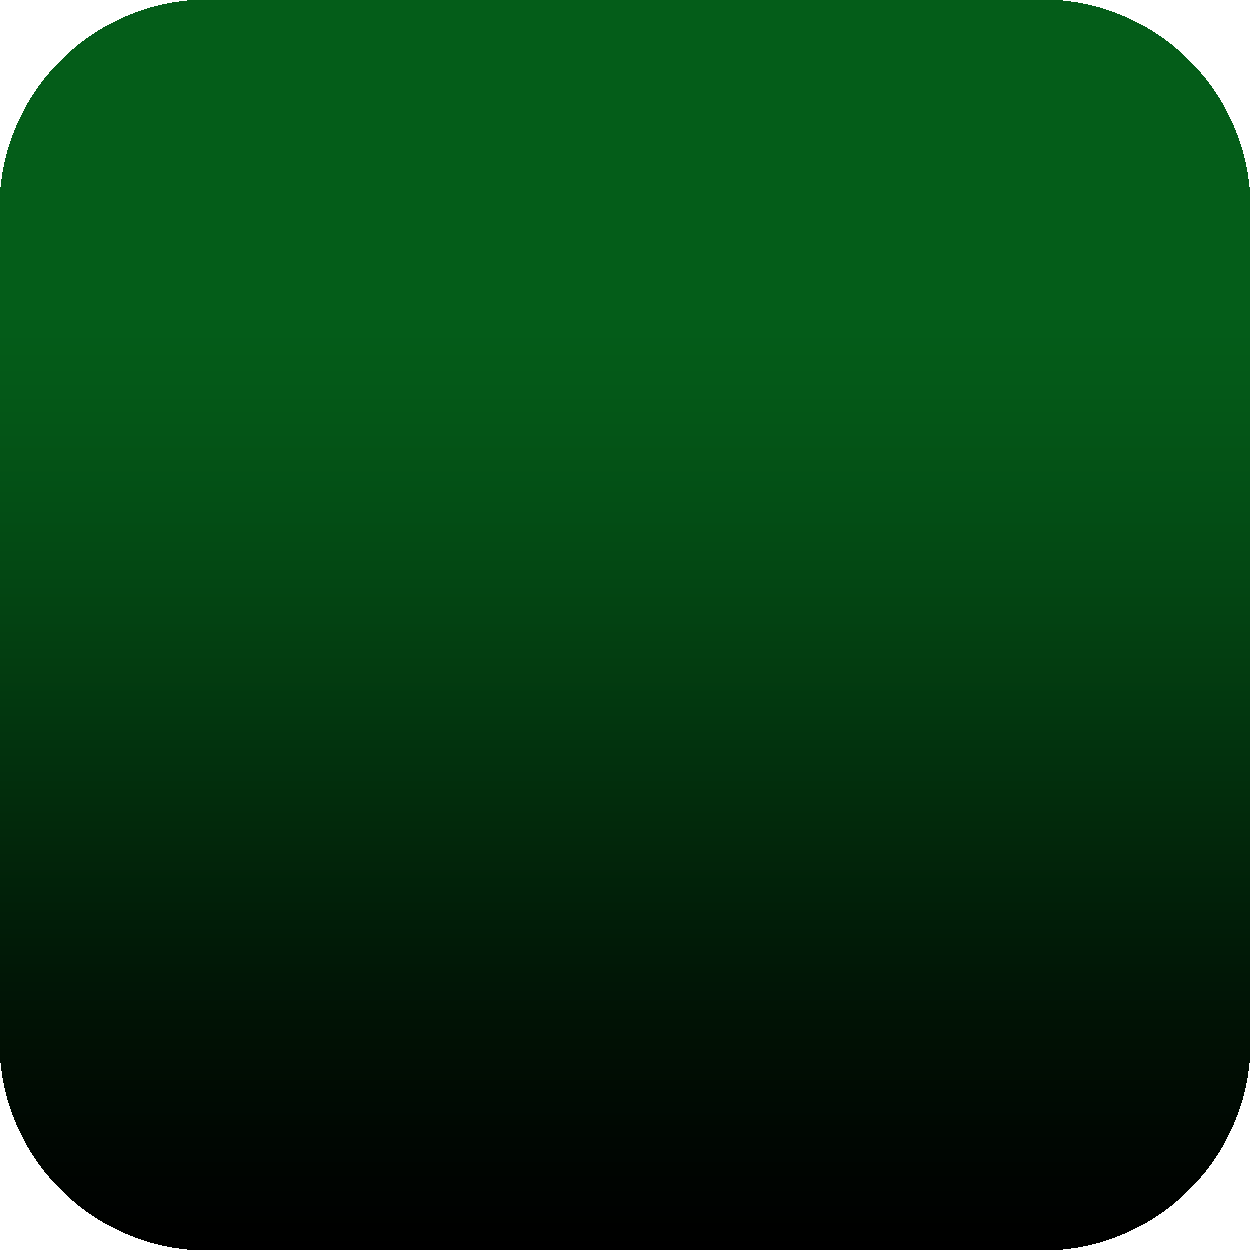 Background Image Icon File:background Green Icon.png